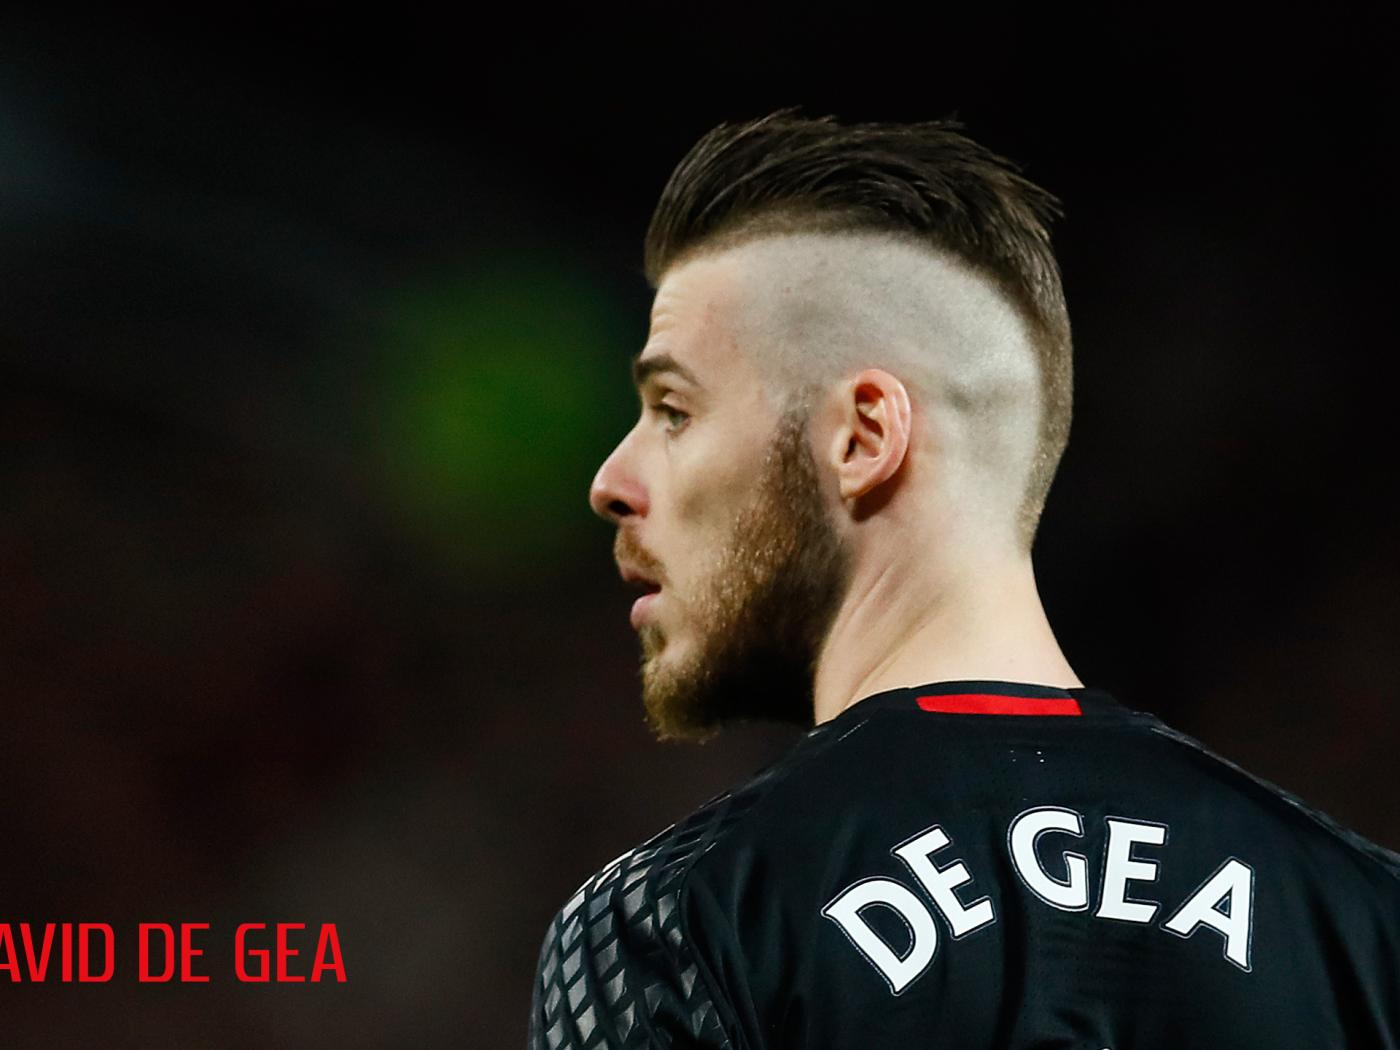 David De Gea Manchester United Close Up Photo For